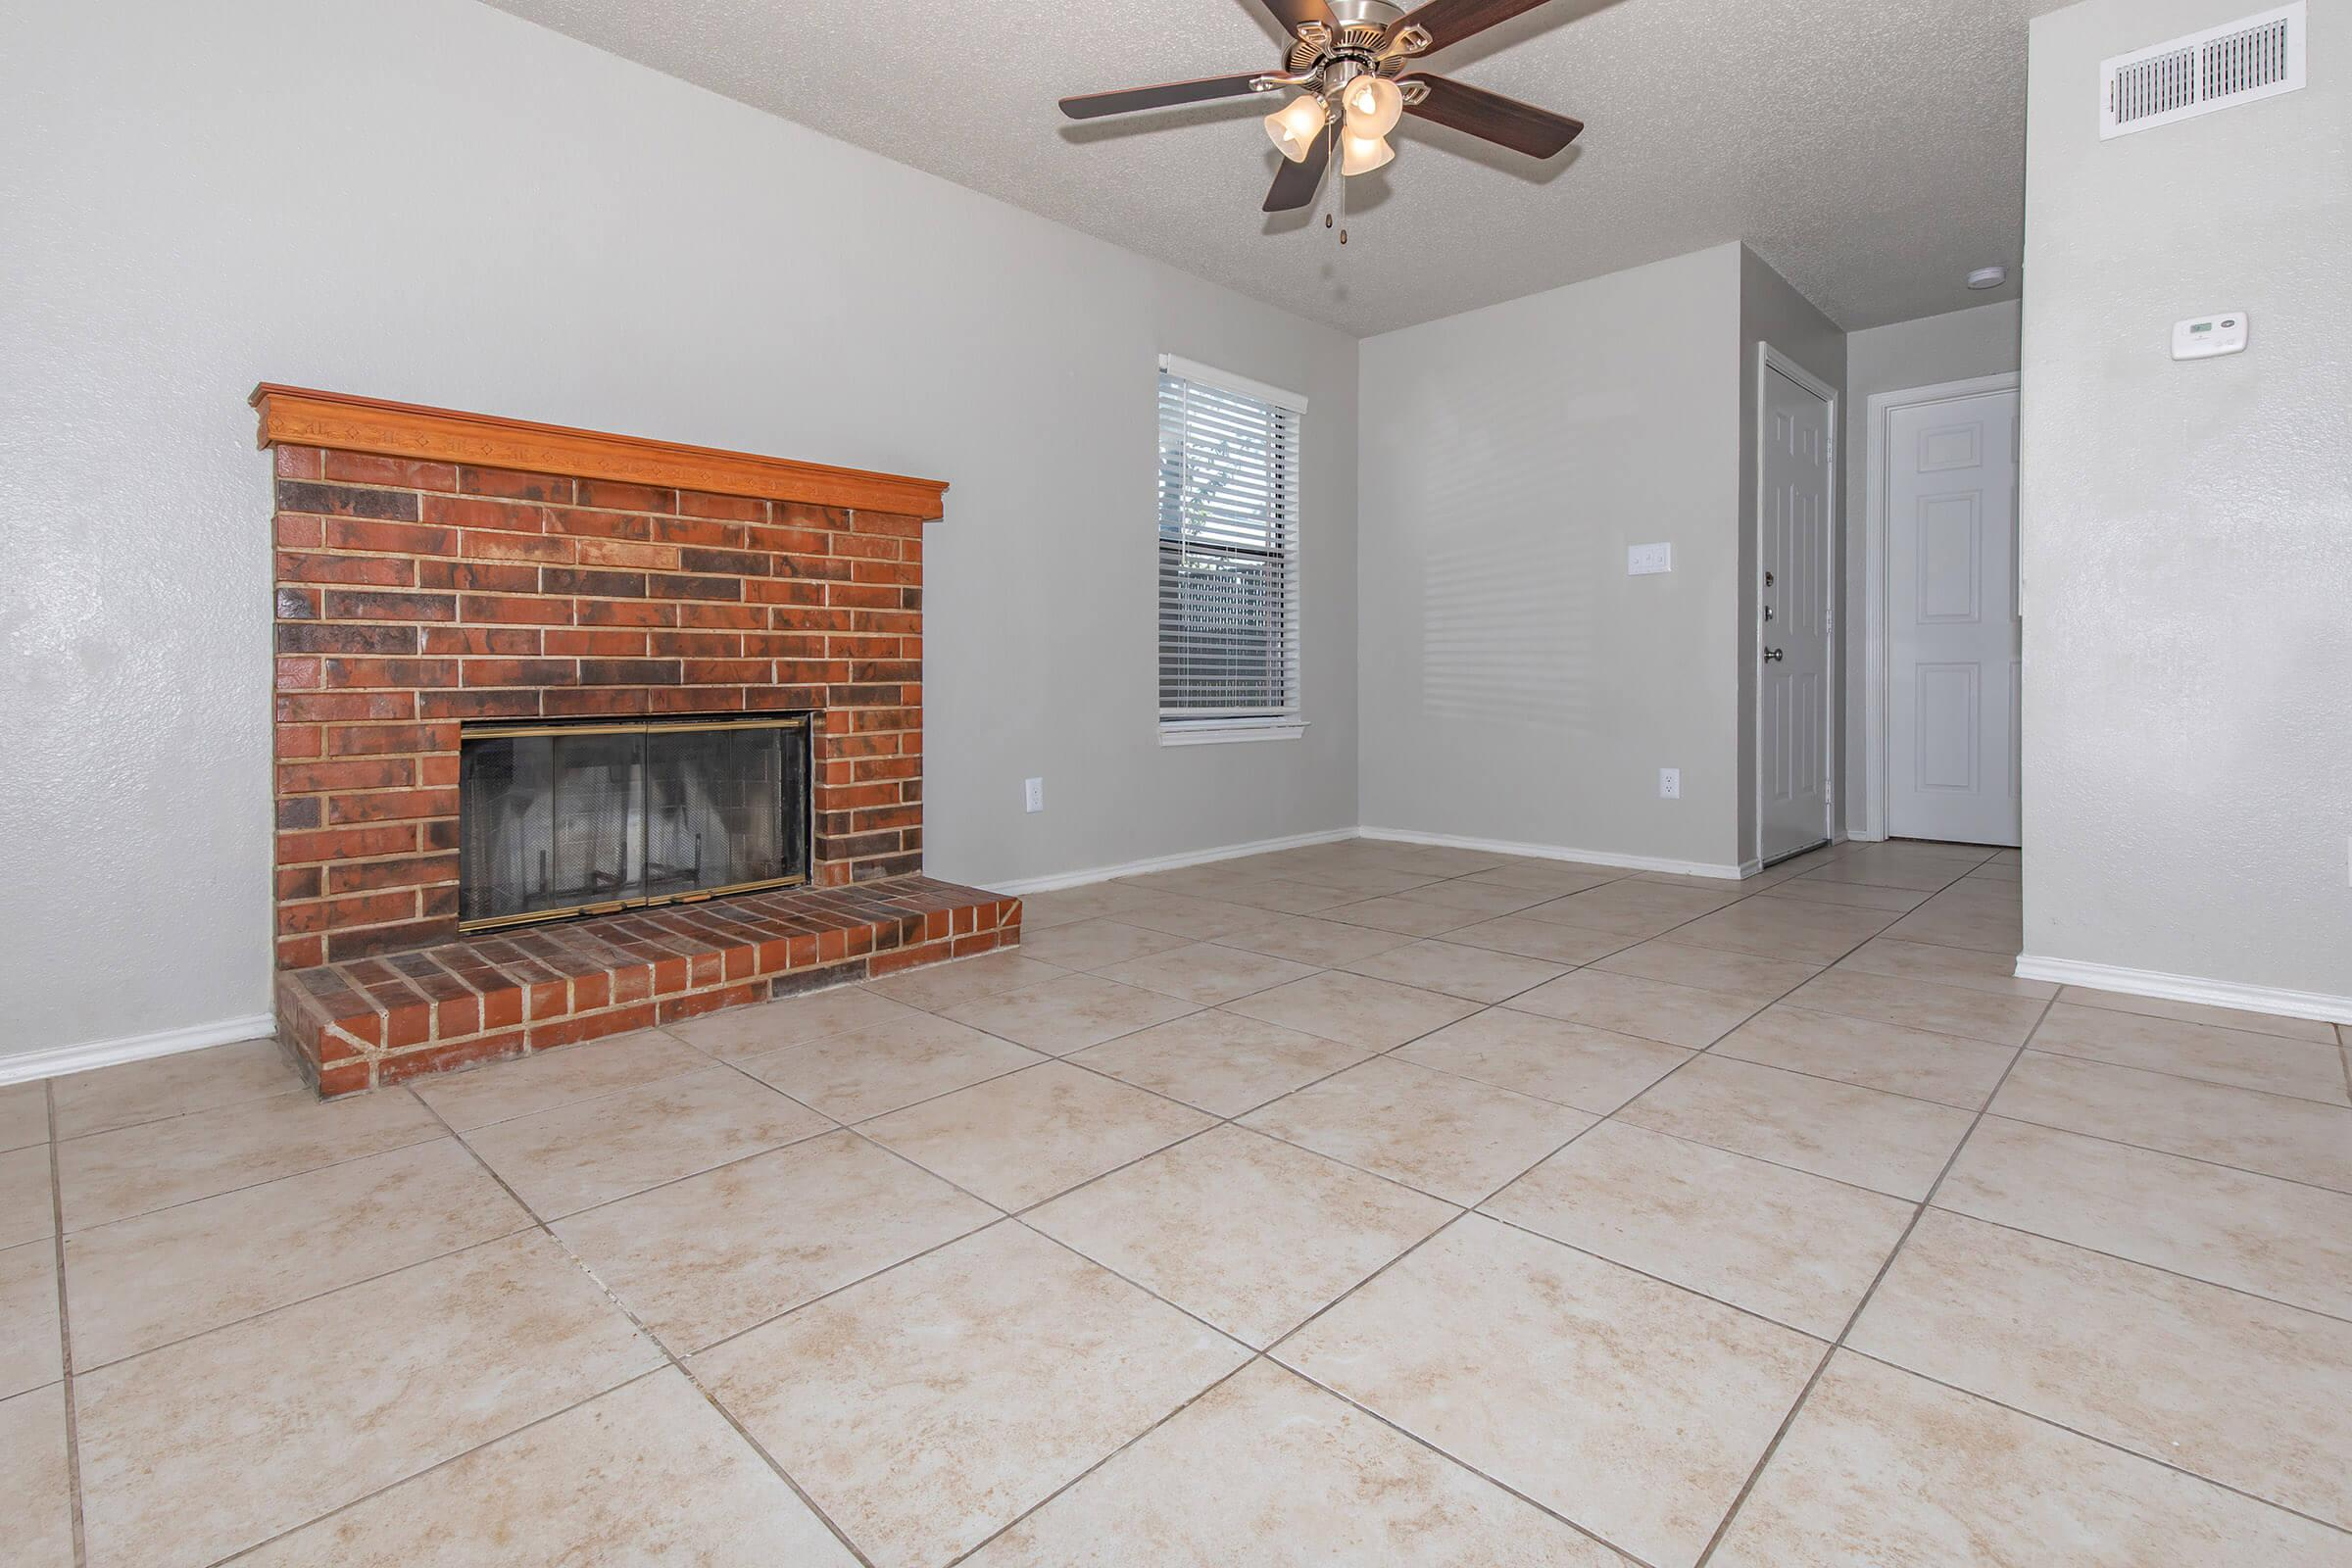 a fire place sitting in a room